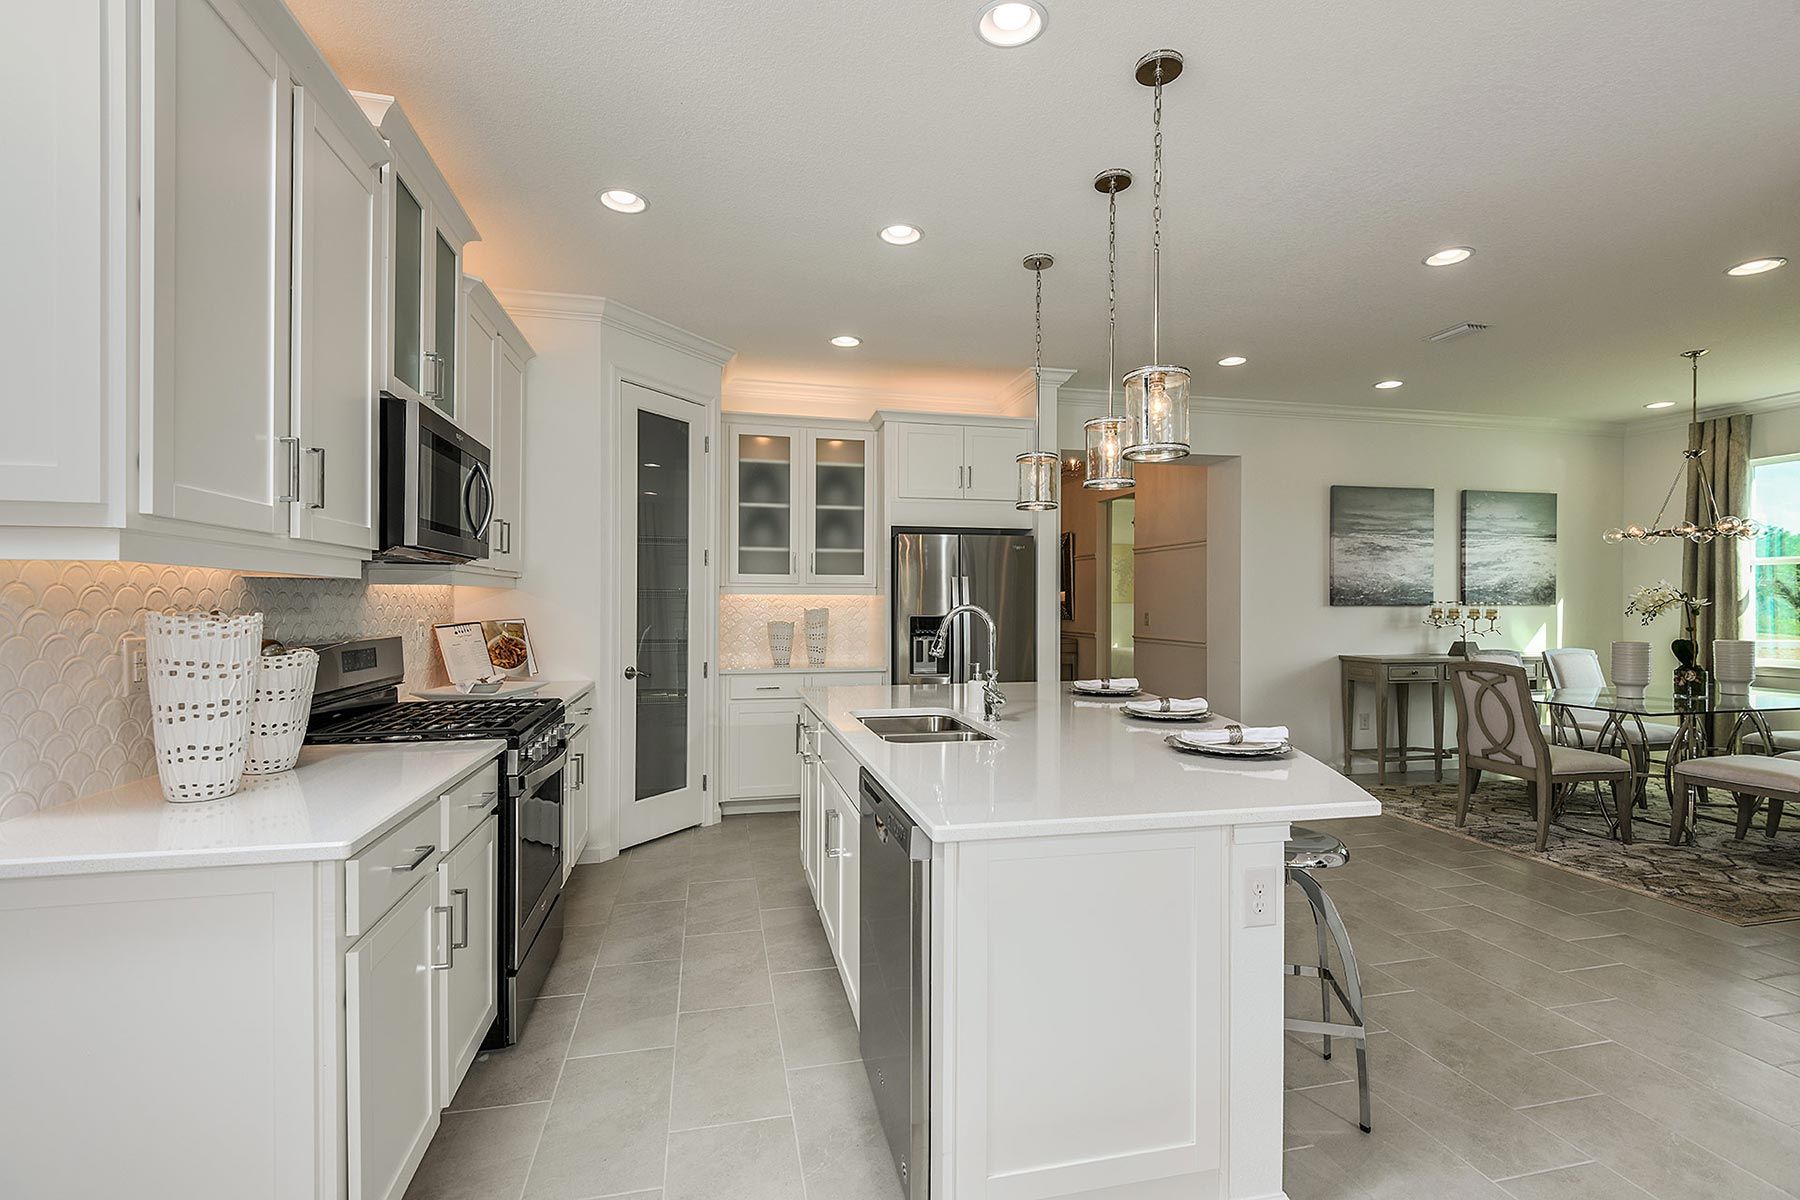 Seascape Plan Kitchen at Sunrise Preserve at Palmer Ranch in Sarasota Florida by Mattamy Homes